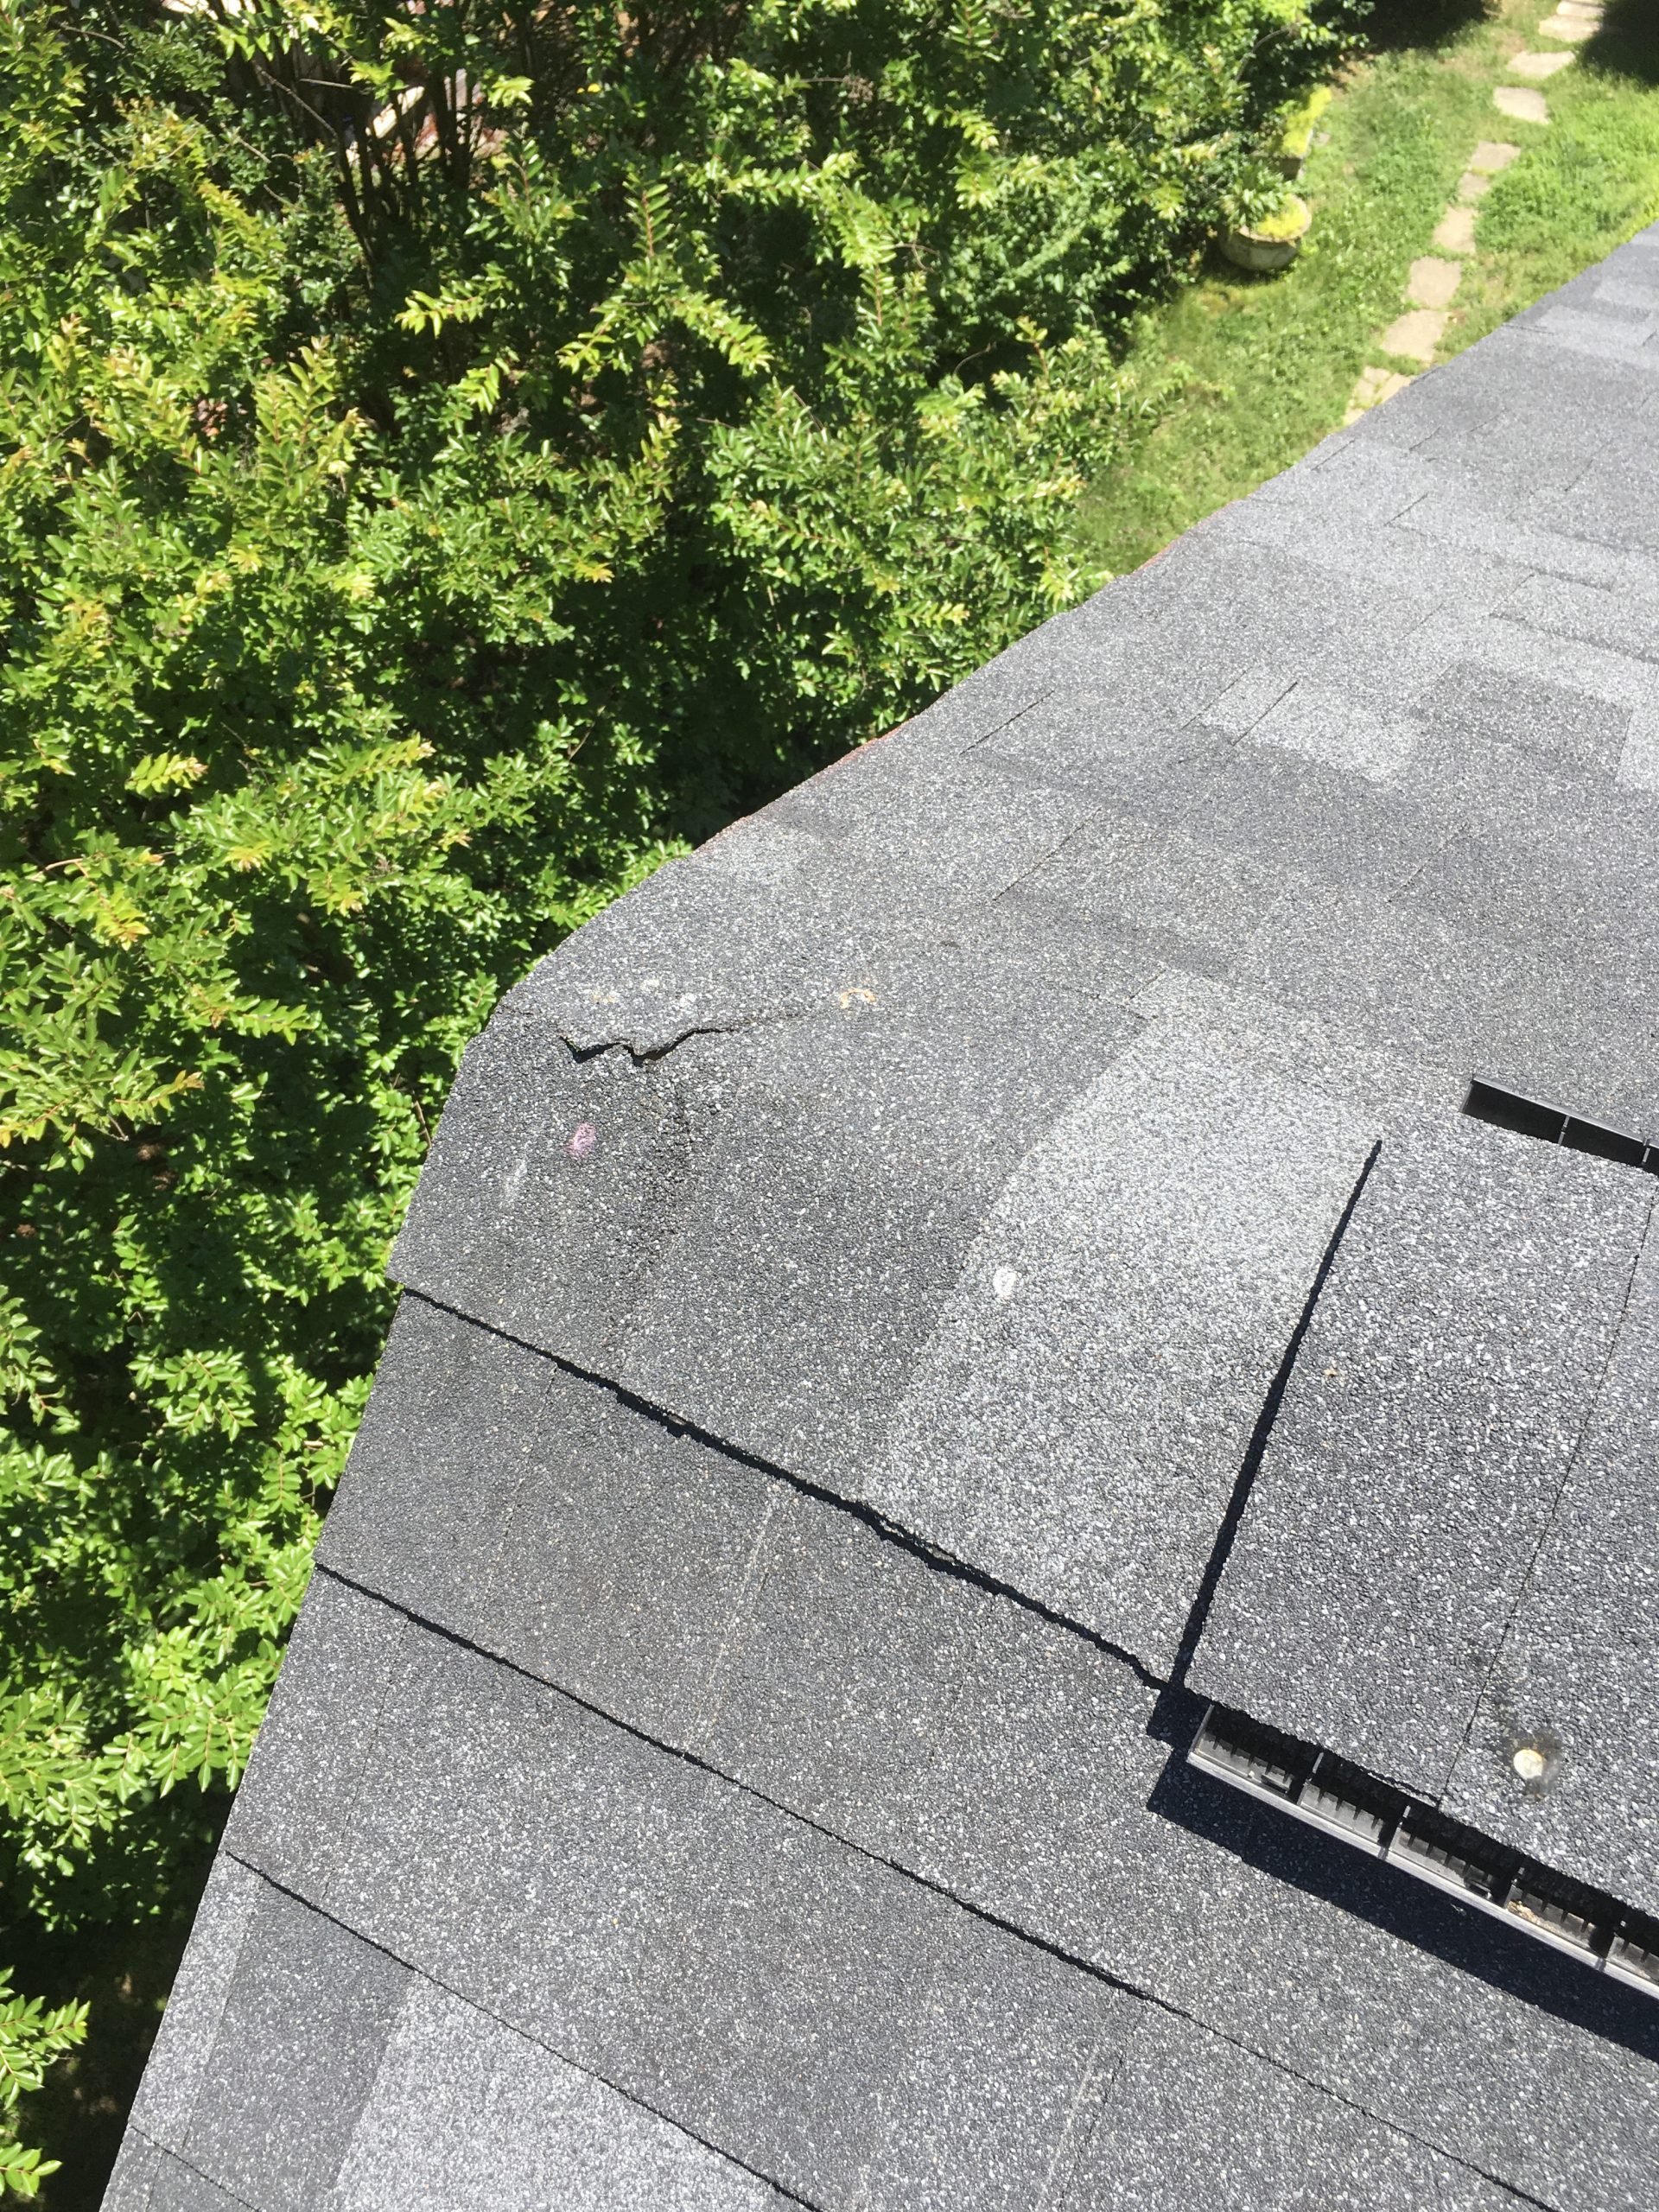 This is a view of the ridge gray ridge shingle that is damaged.